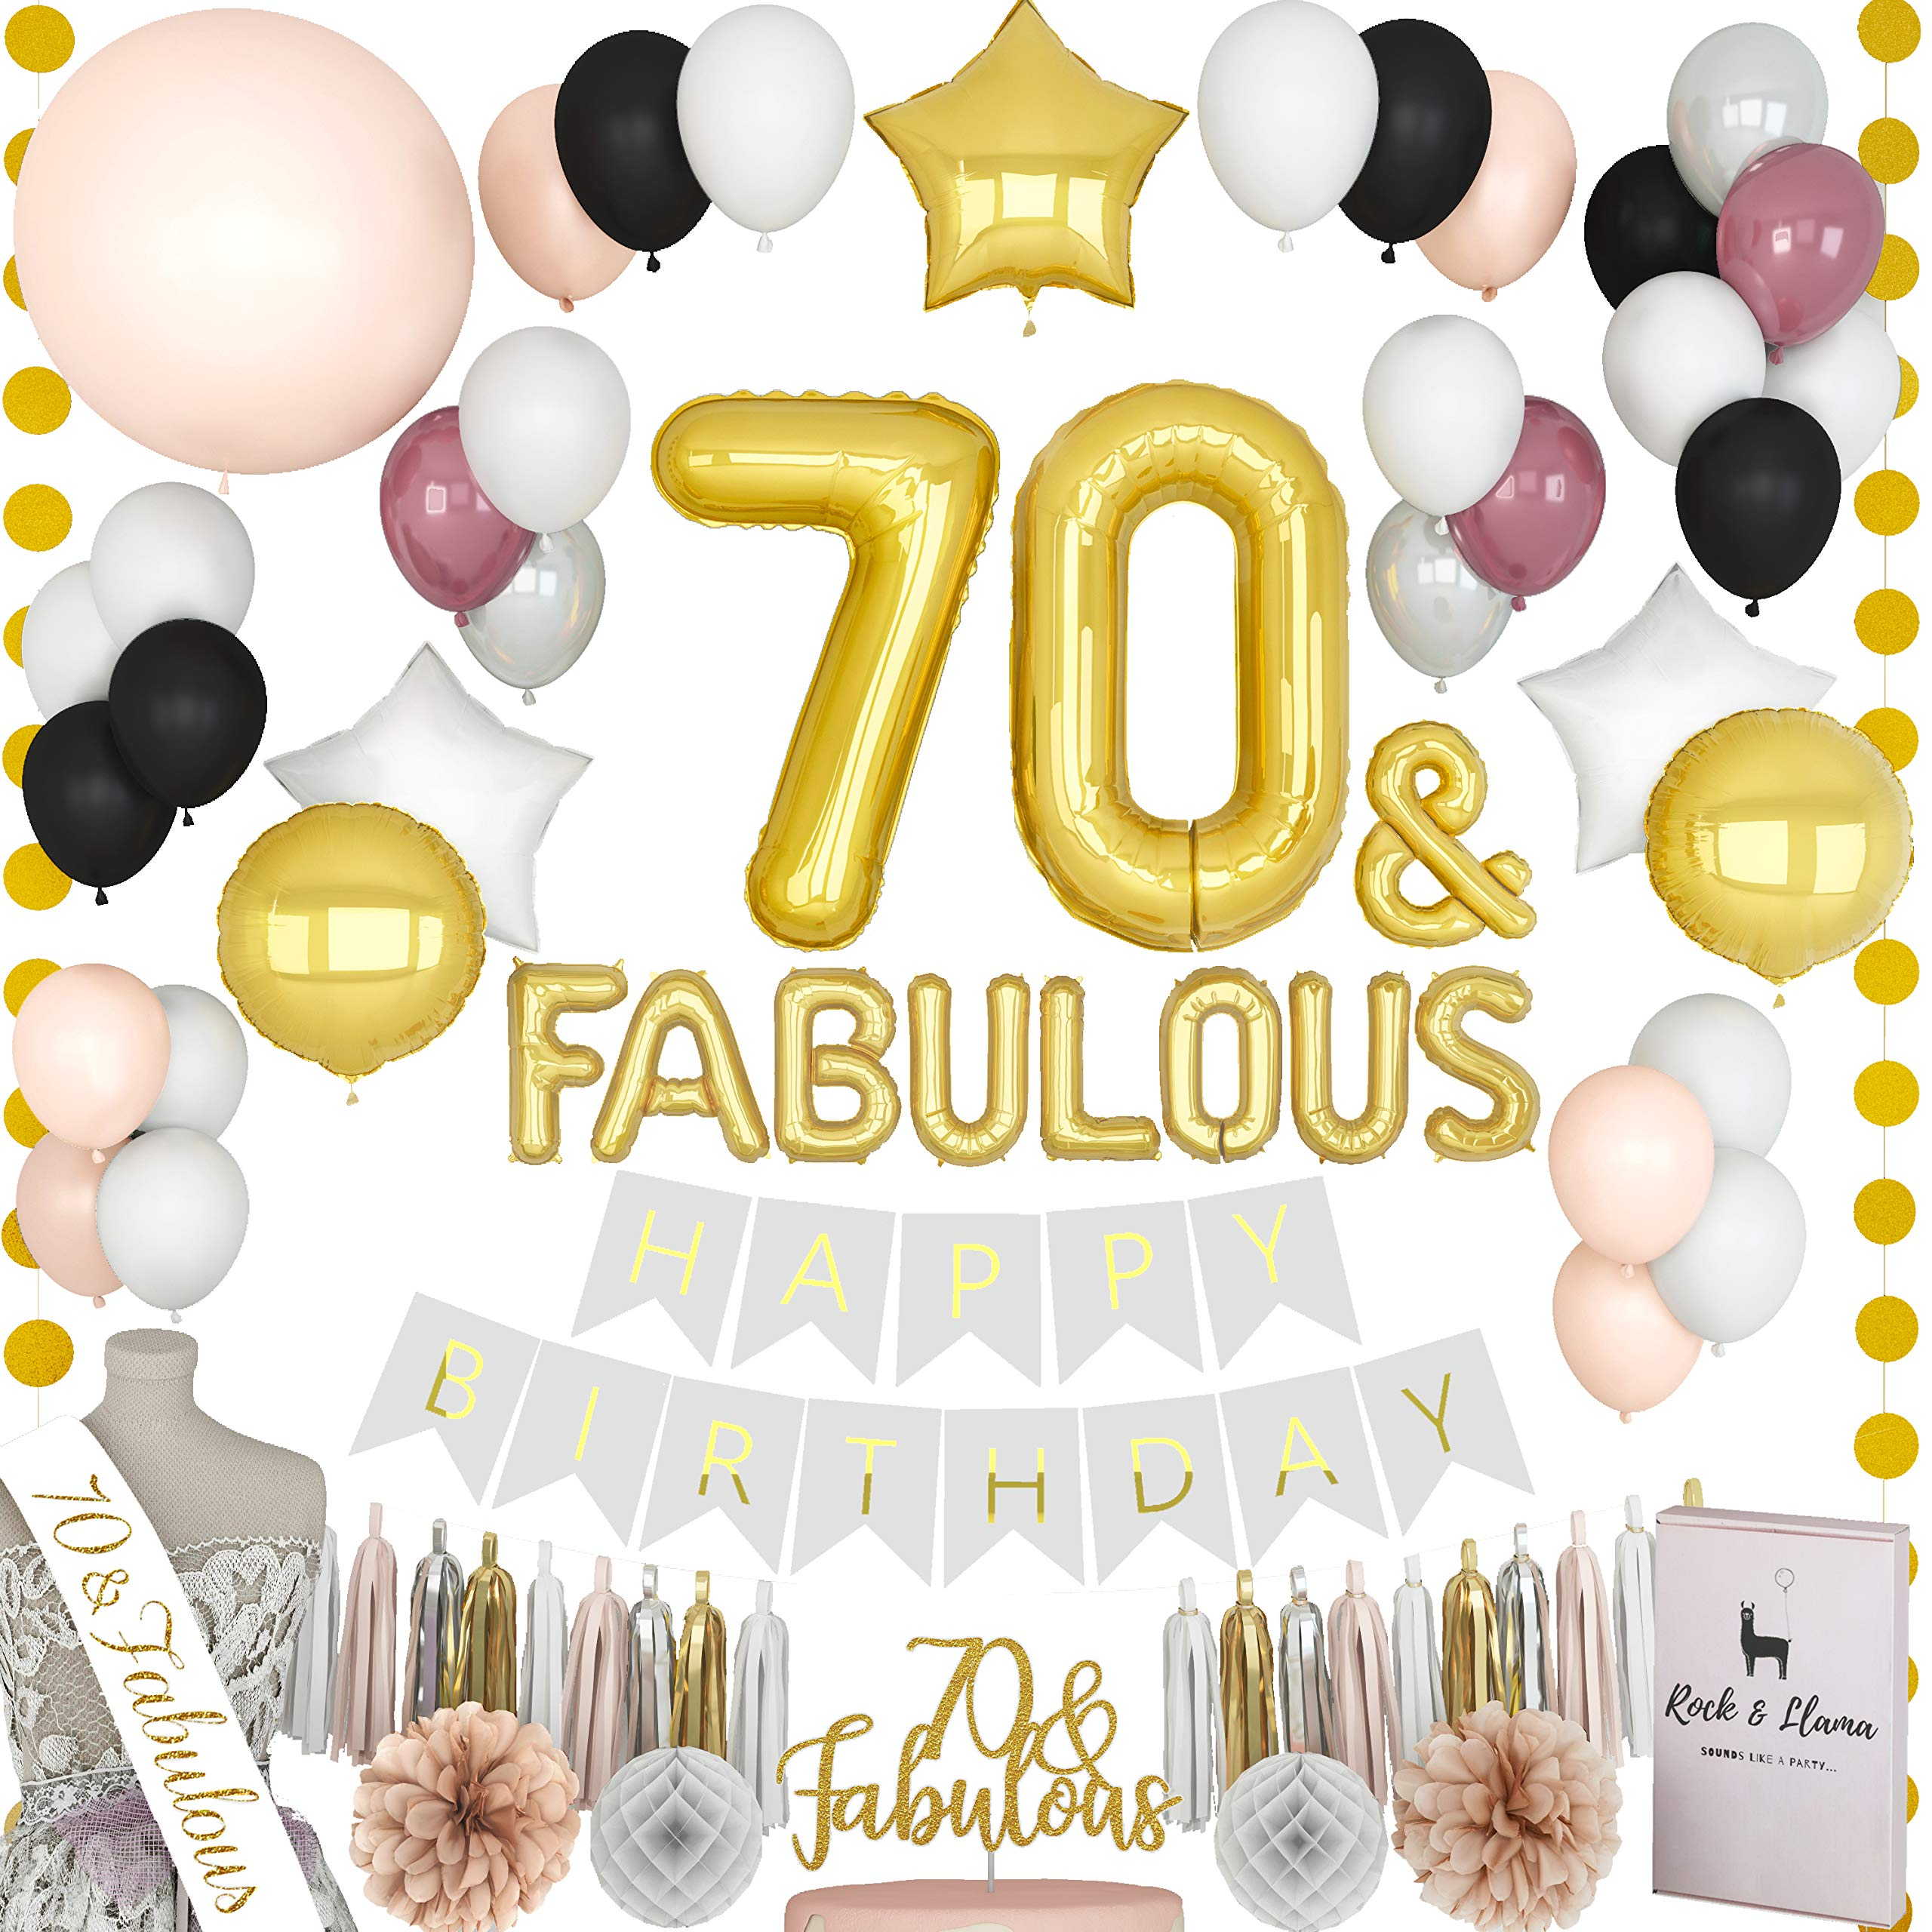 TRULY FABULOUS 70th Birthday Party Supplies + (70 SASH) + (FABULOUS Letter Balloons) + (Cake Topper) | Gold Black Burgundy Seventy Bday Decorations For Women | (71+ Items)